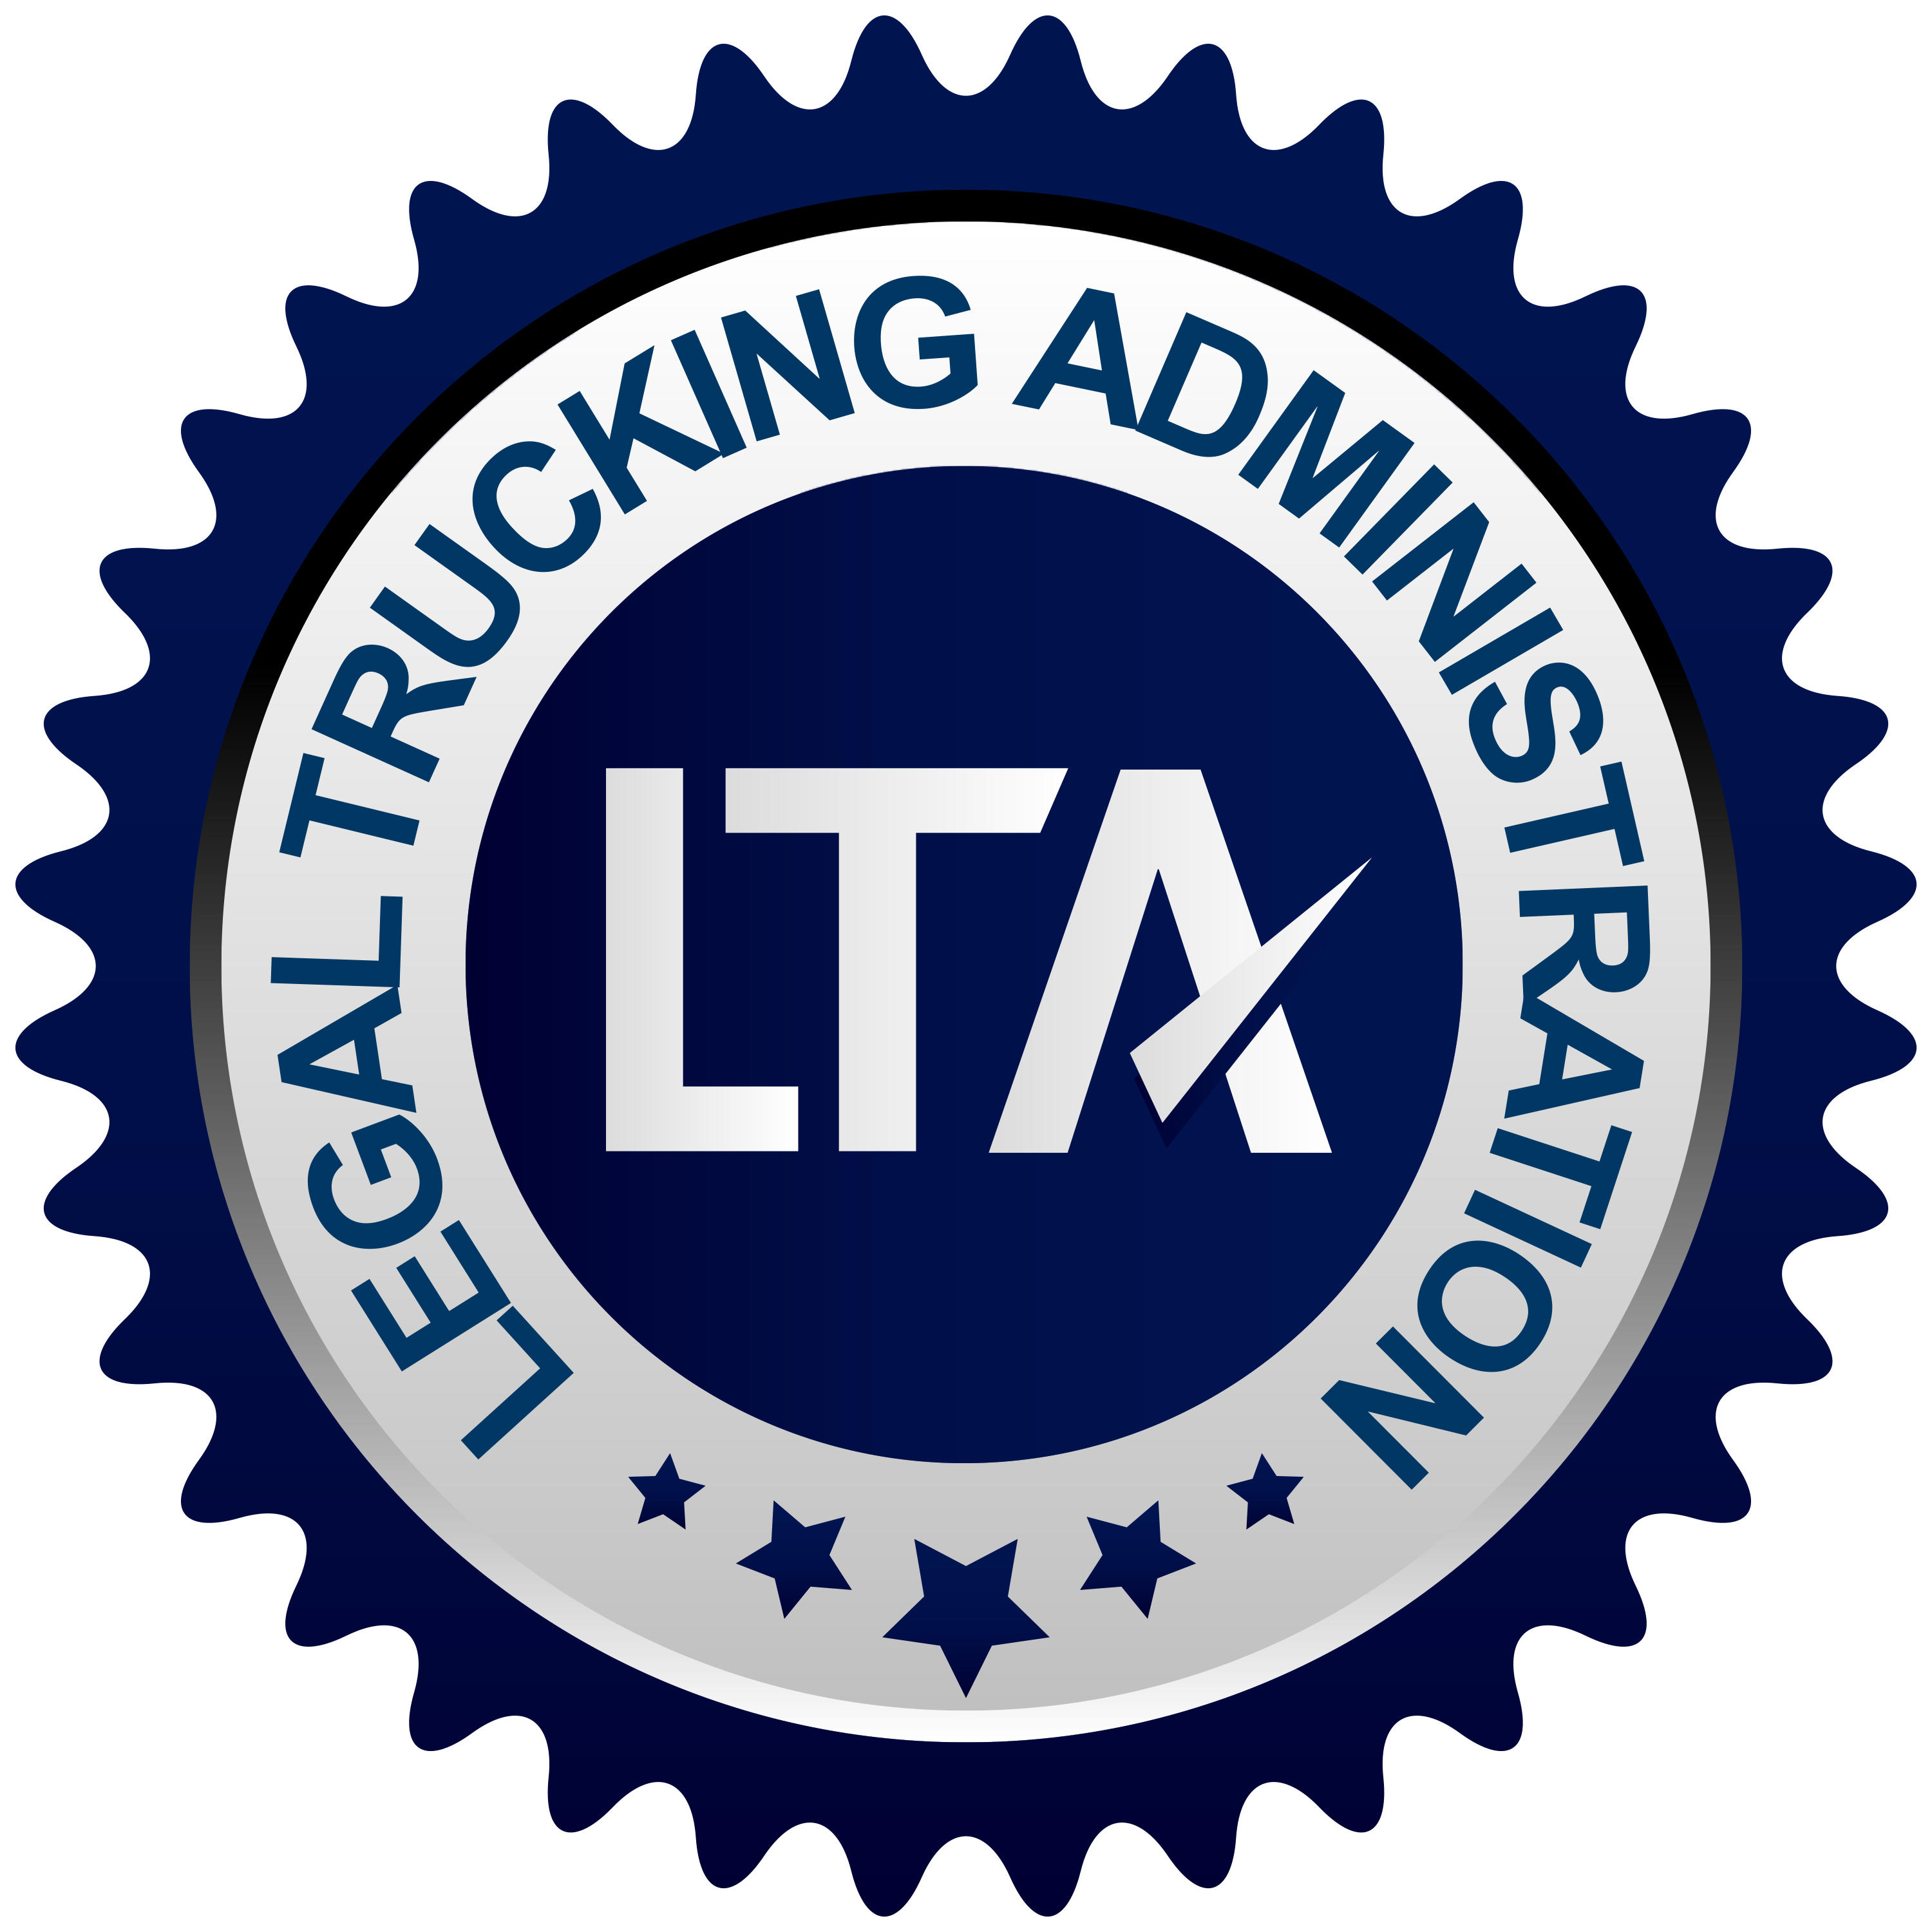 Legal Trucking Administration - Albany, GA - Business Consulting